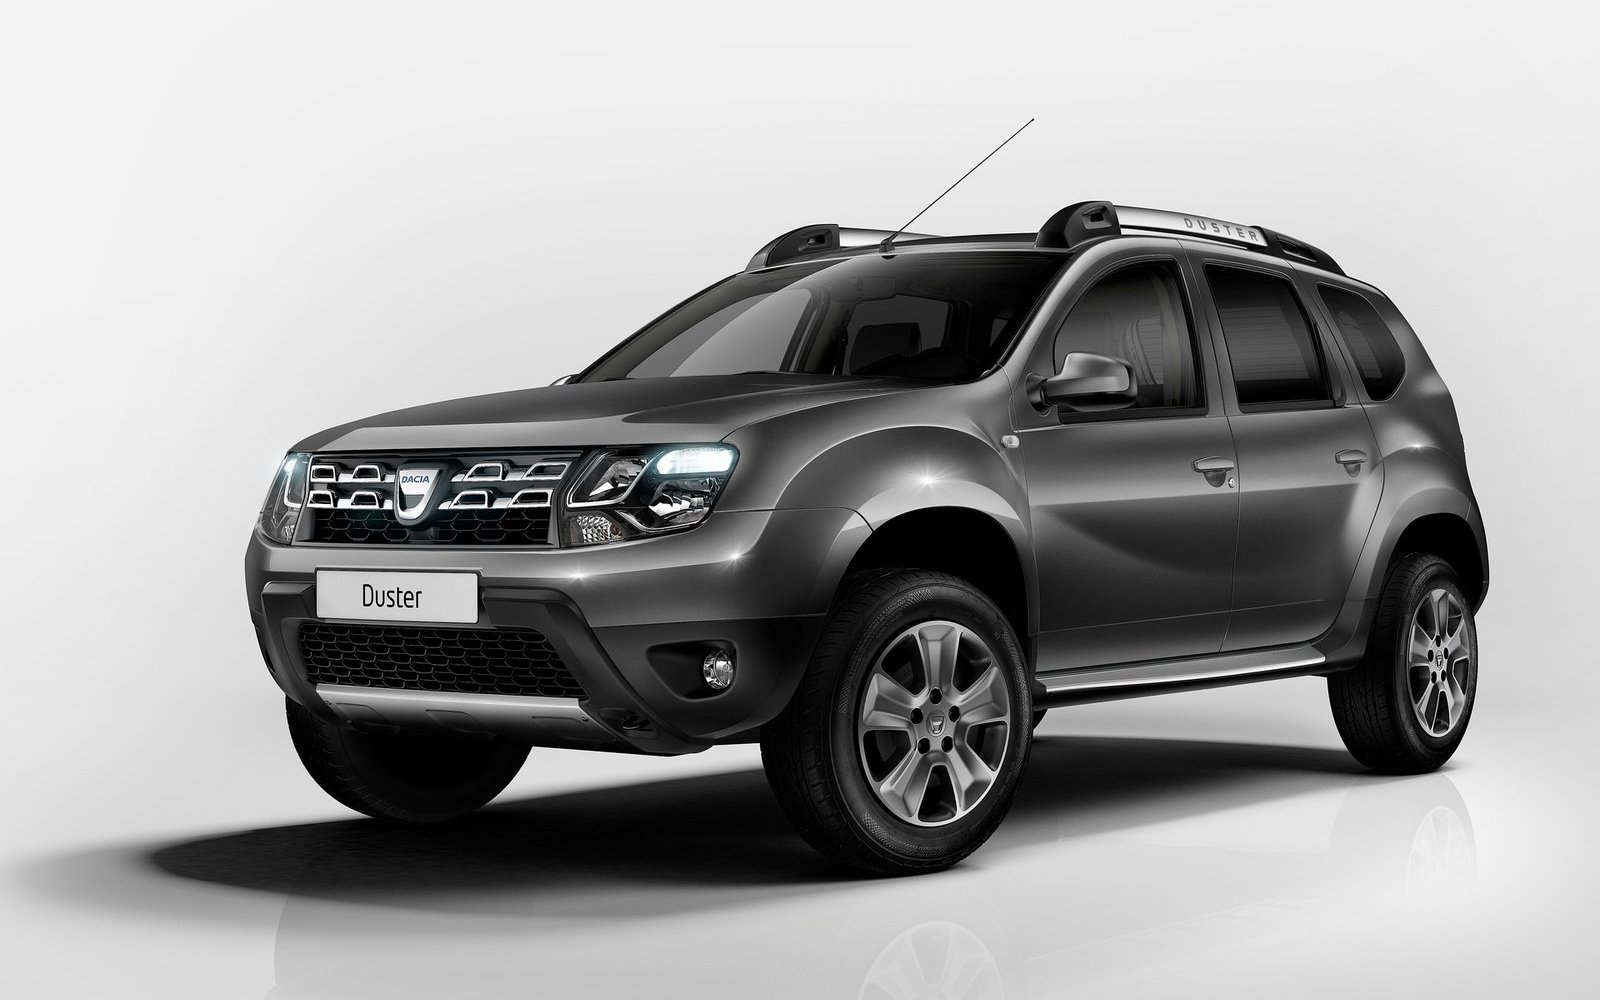 2014 dacia duster makyajland turkeycarblog. Black Bedroom Furniture Sets. Home Design Ideas